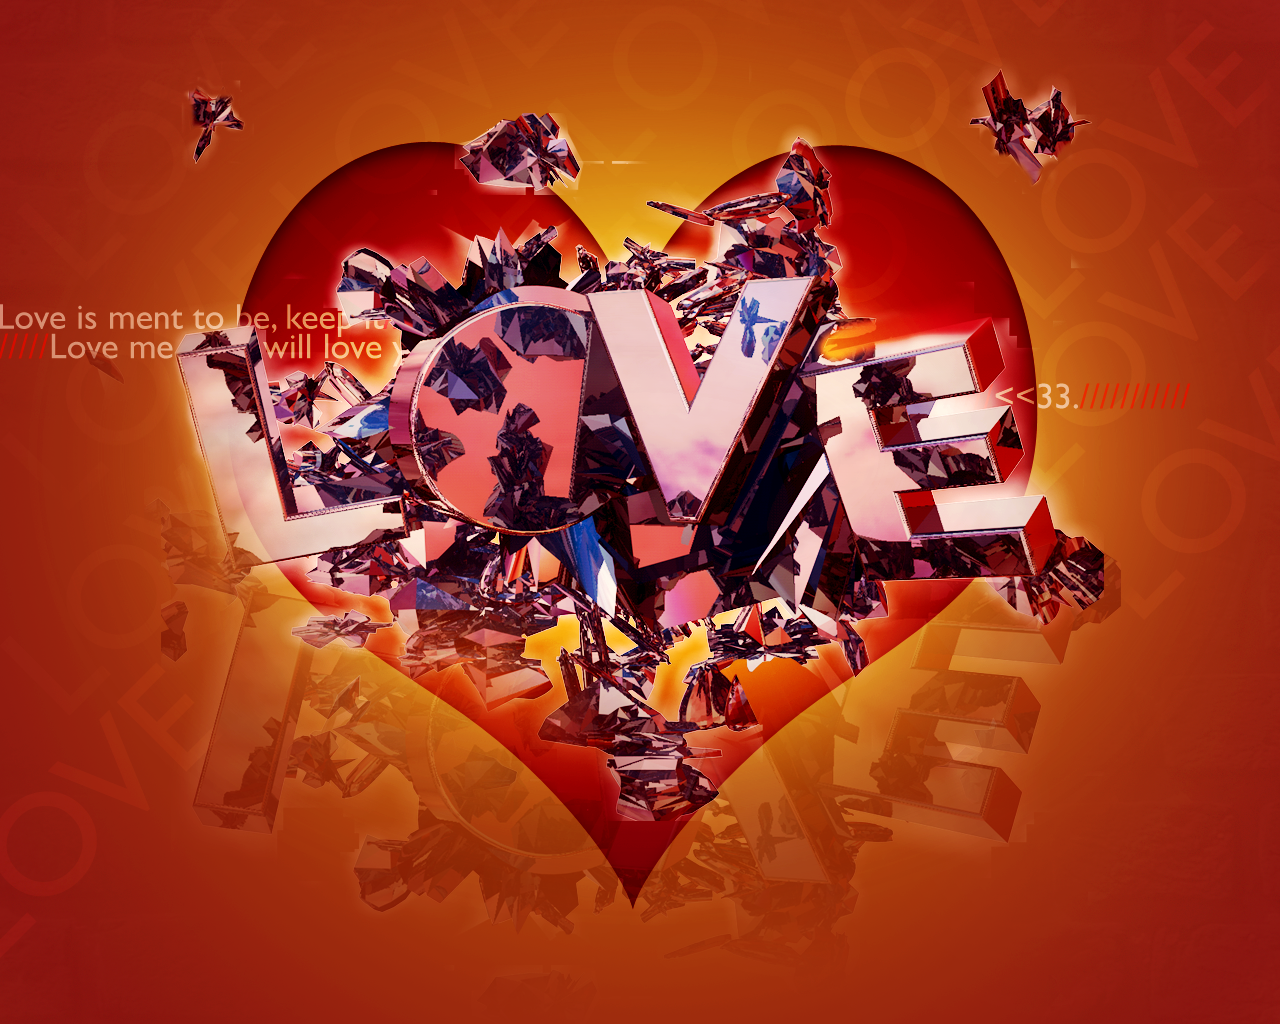 New English Love Wallpaper : Amazing Wallpapers: New love photos wallpaper, new love wallpaper